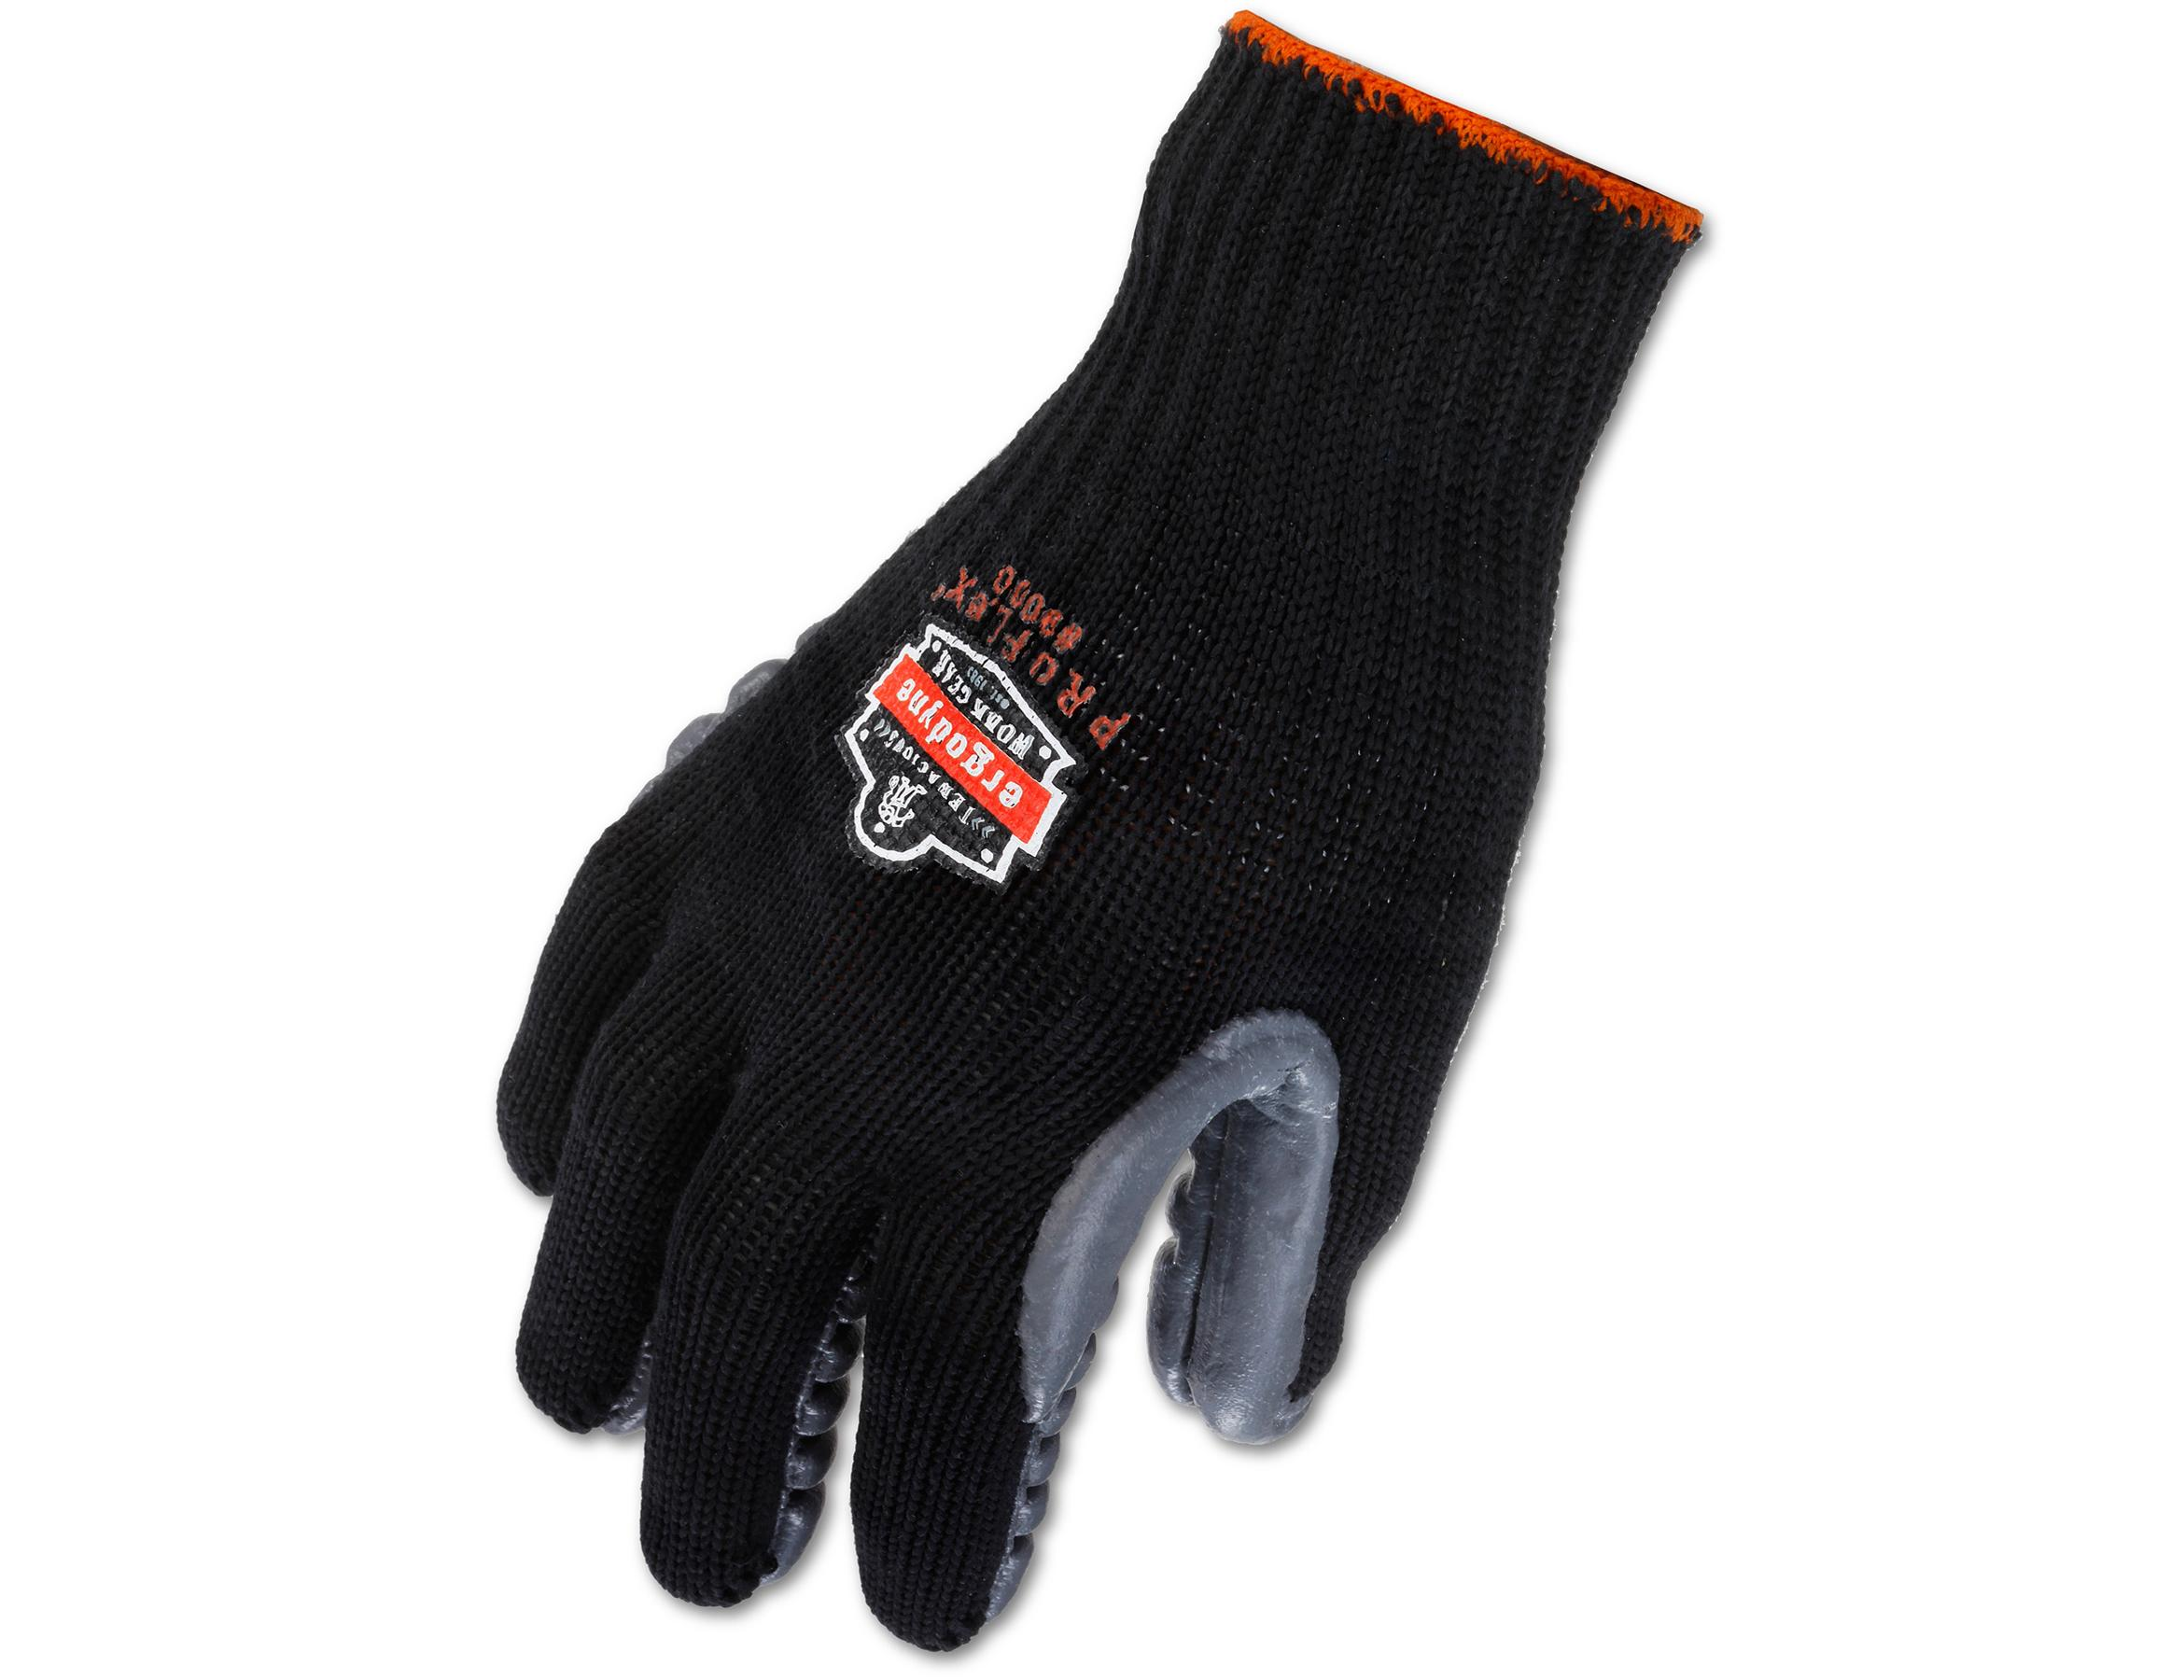 Motorcycle gloves to prevent numbness - View Larger